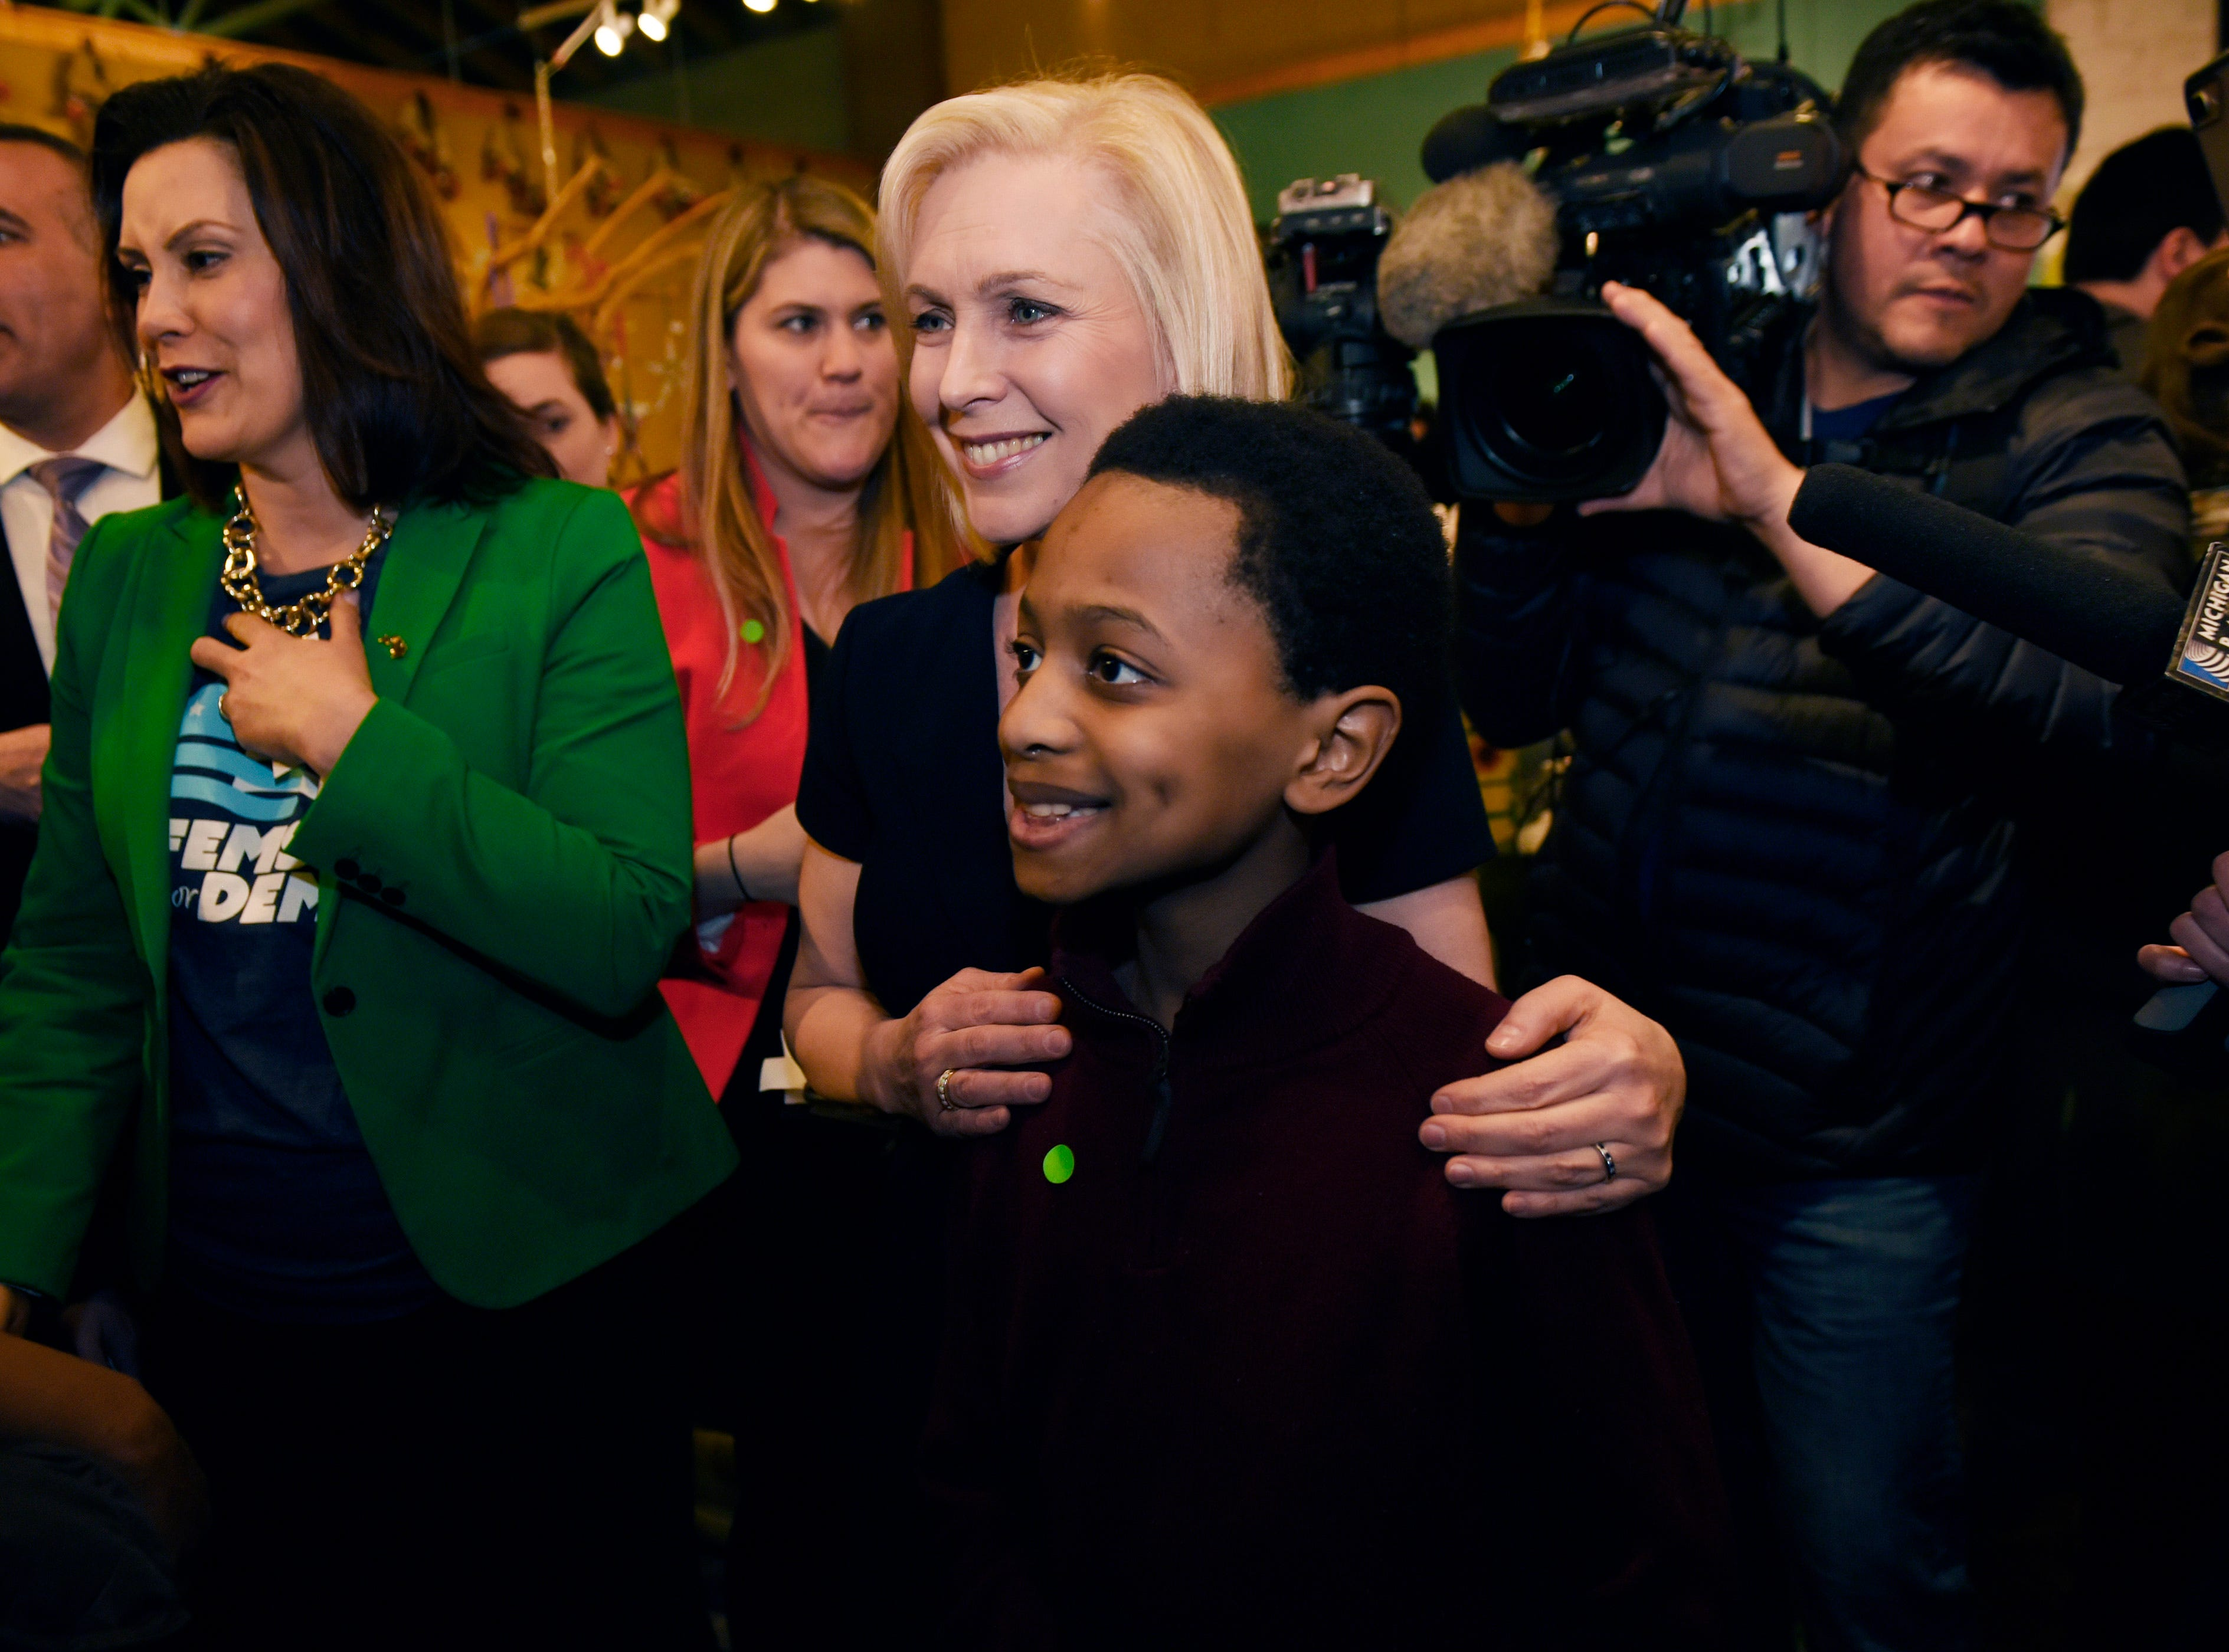 Presidential candidate Kristen Gillibrand,  center, takes a selfie with 10-year-old Grayson Smith of Beverly Hills. Grayson asked Mrs. Gillibrand what she will do about the immigration issue.